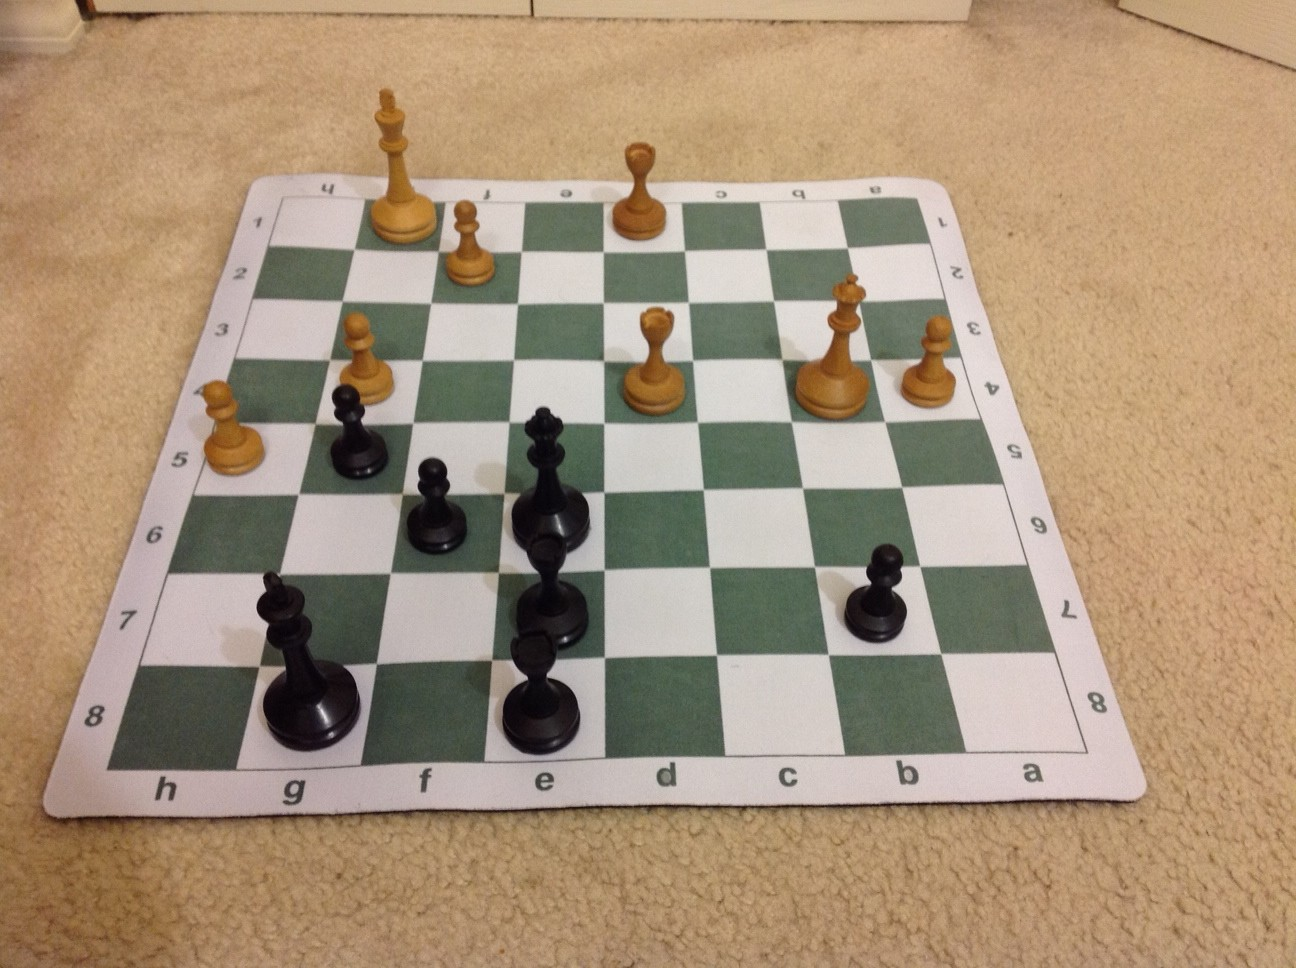 Training position 3 White to move over 700